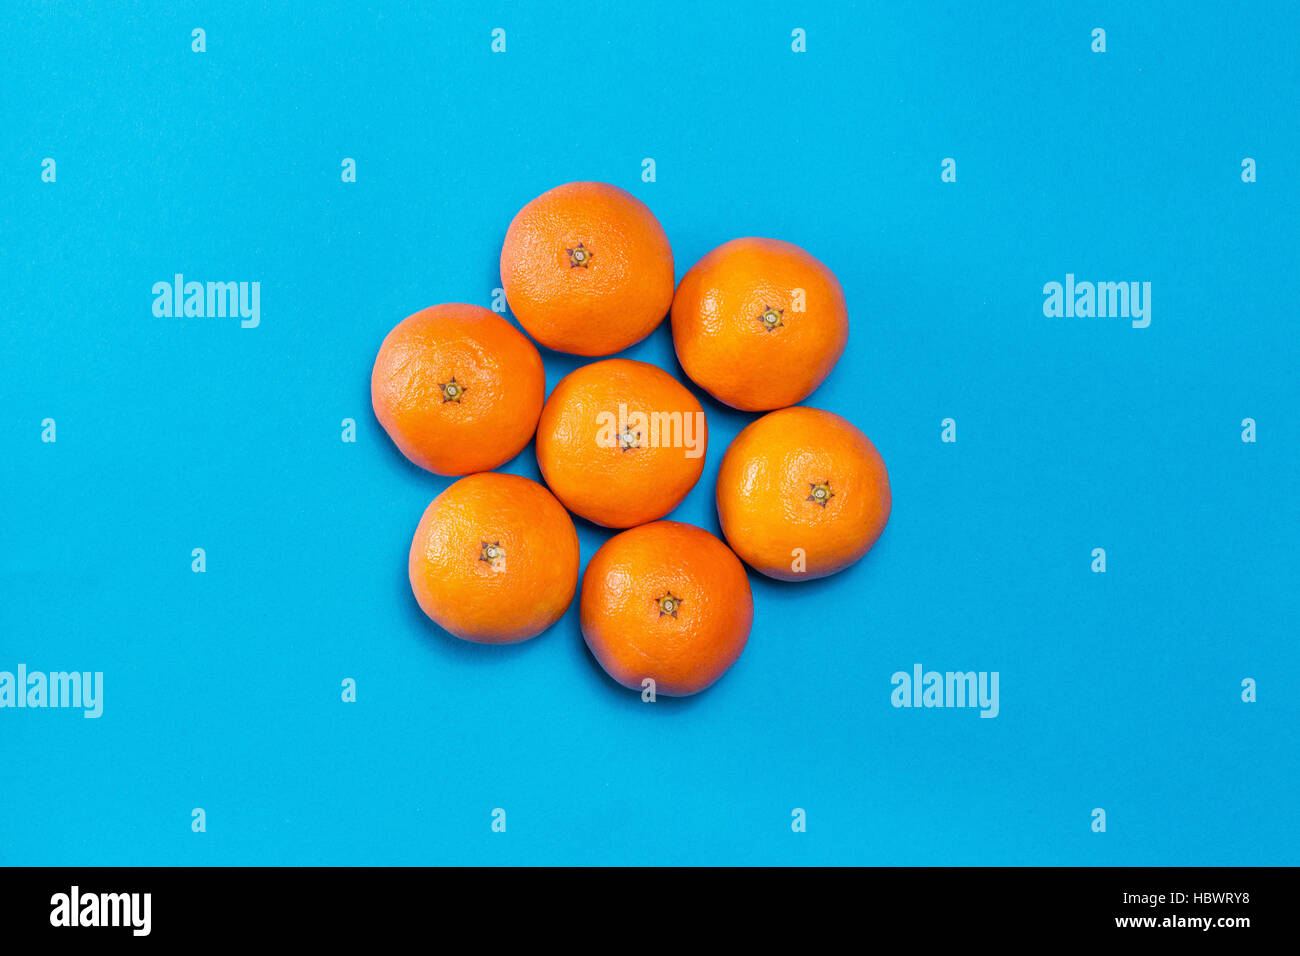 Six Colorful fresh orange mandarins laid out on blue table viewed from above with copy space. Concept sun on sky. - Stock Image